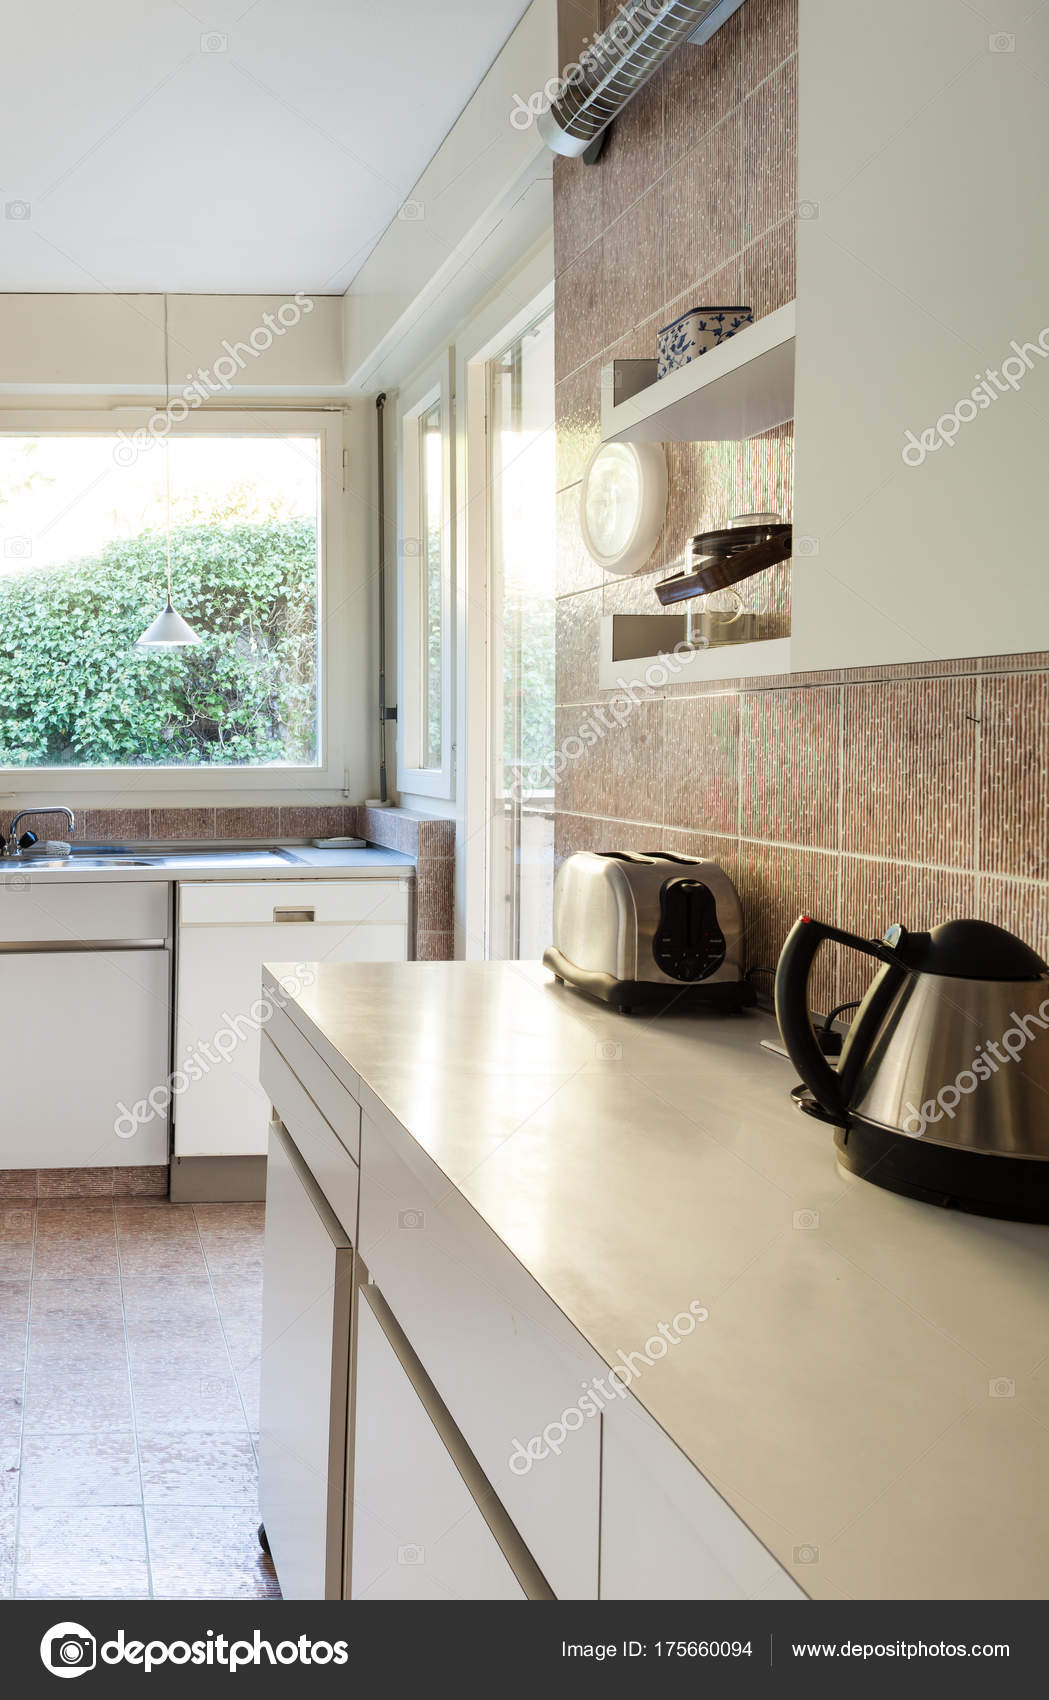 kitchen cabinets.com small outdoor kitchens 家庭厨房白色橱柜 图库照片 c zveiger 175660094